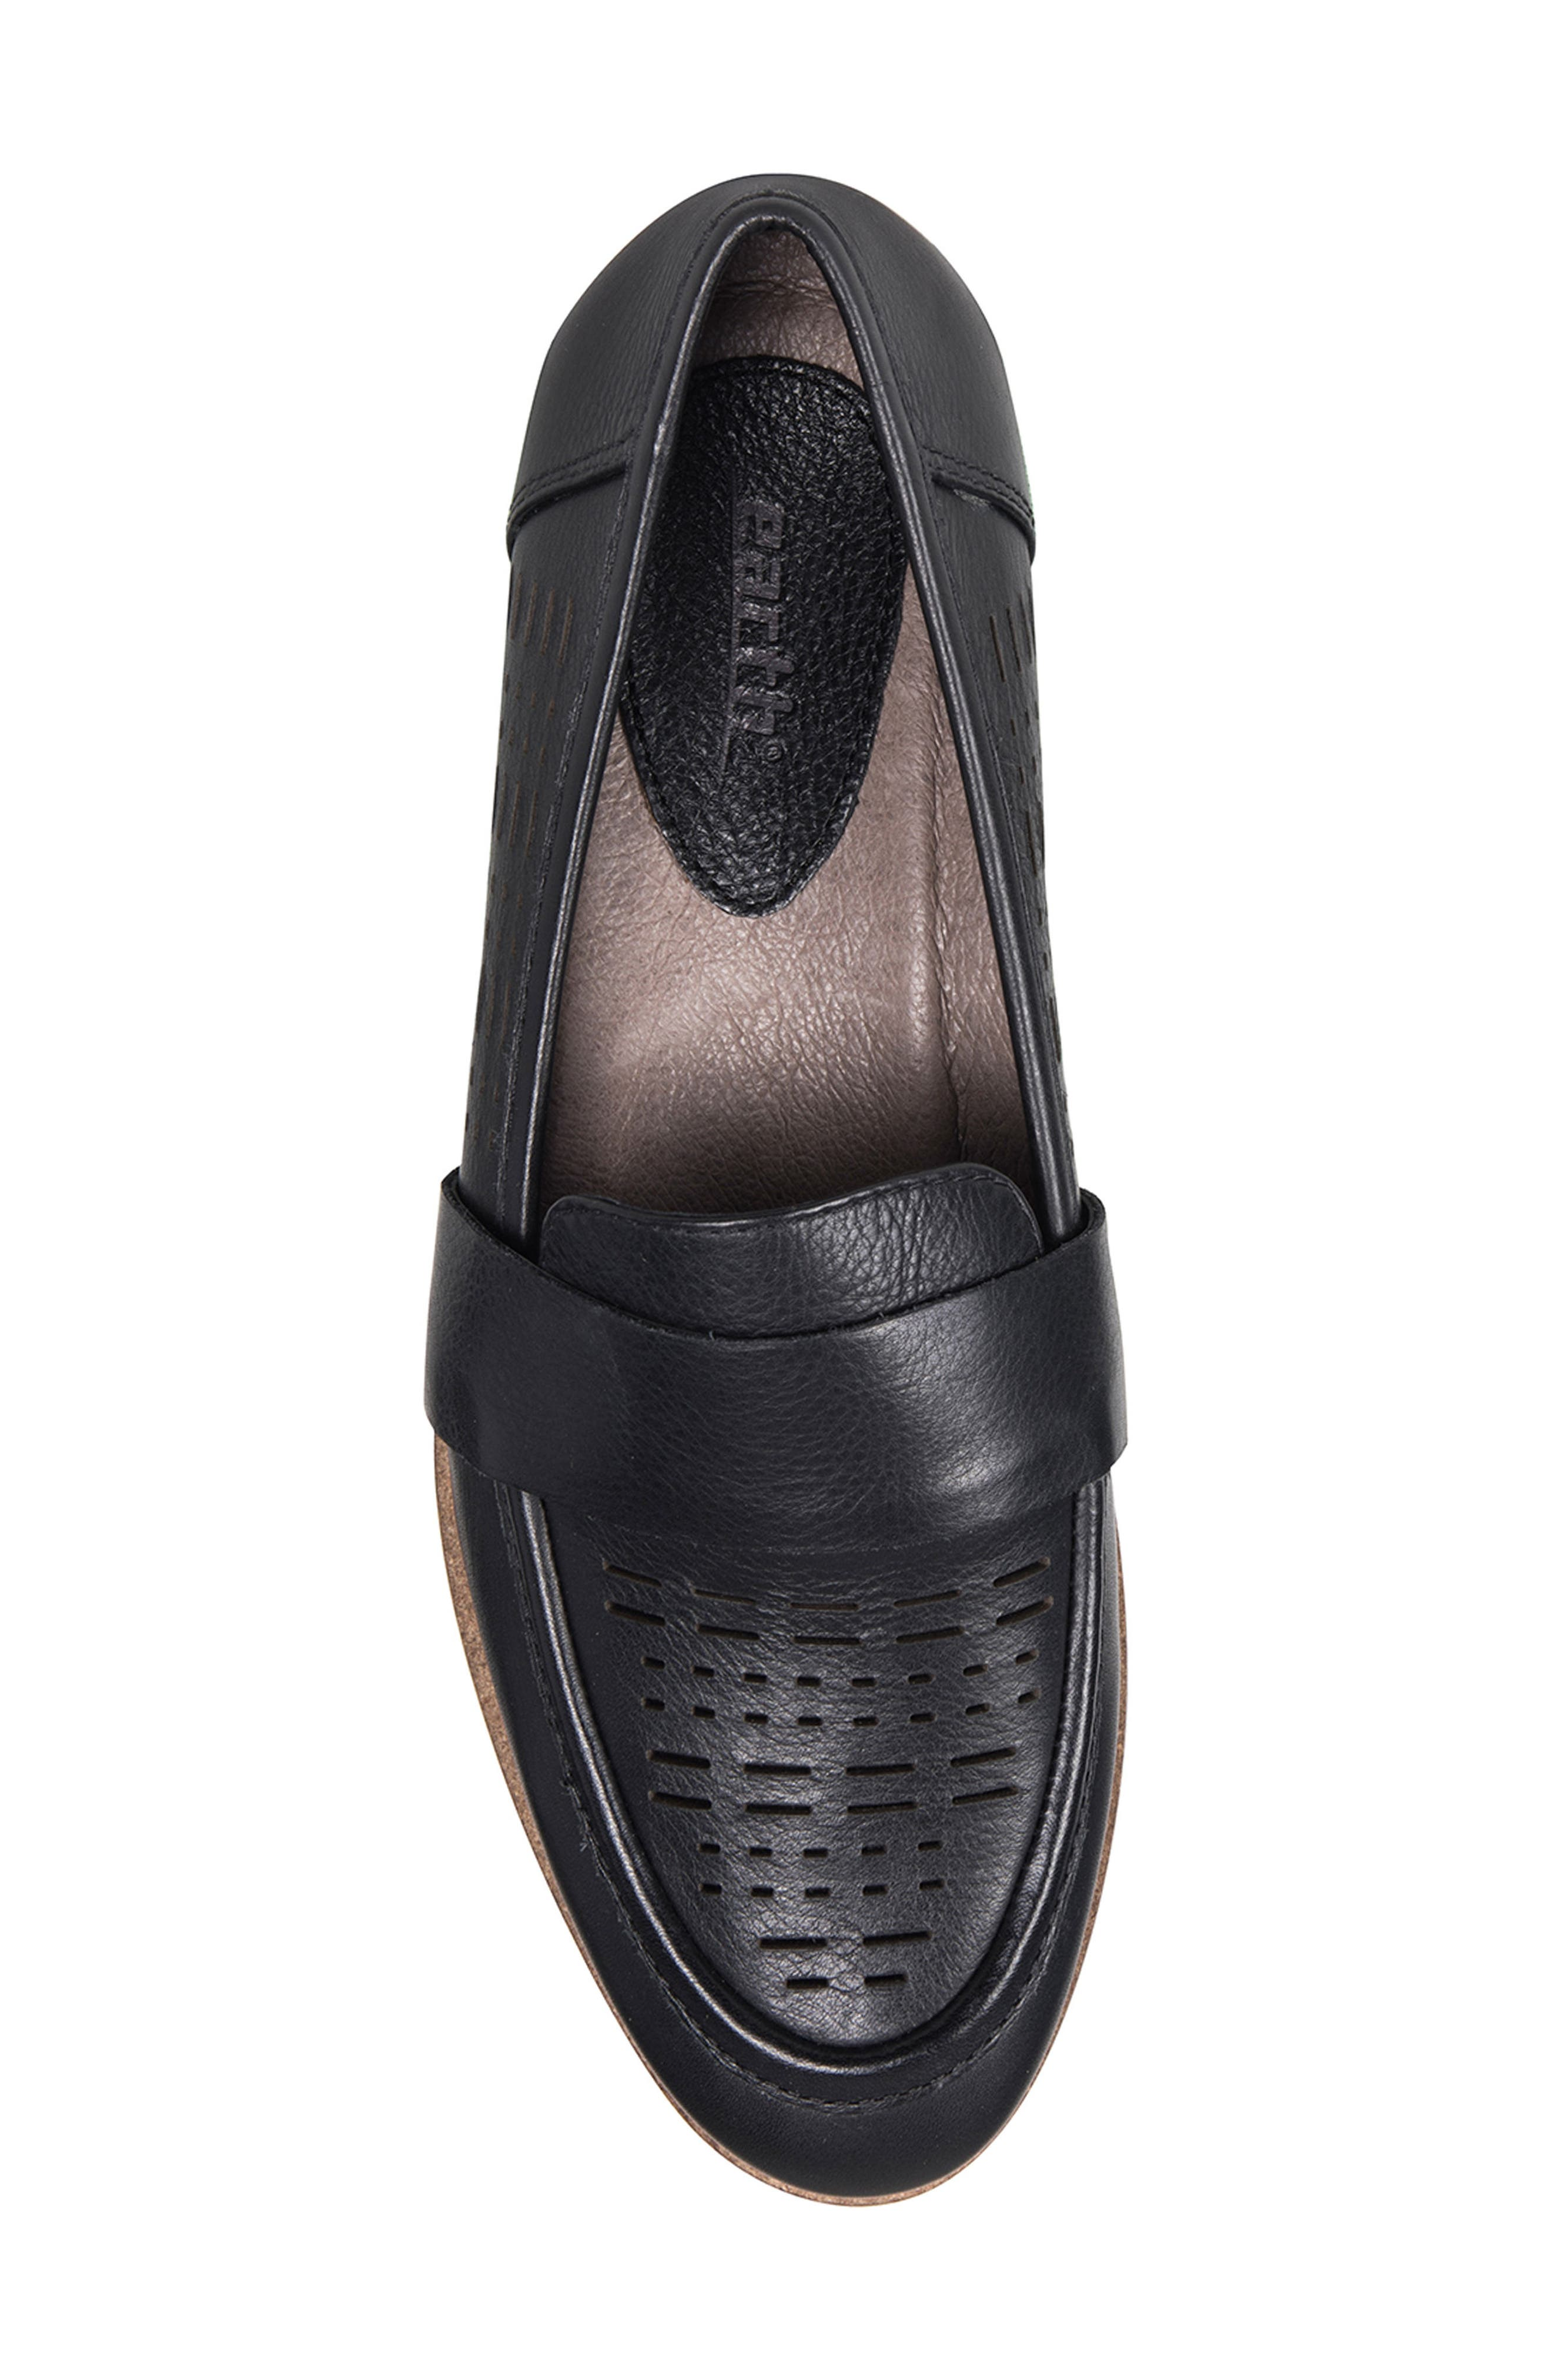 Masio Loafer,                             Alternate thumbnail 5, color,                             001